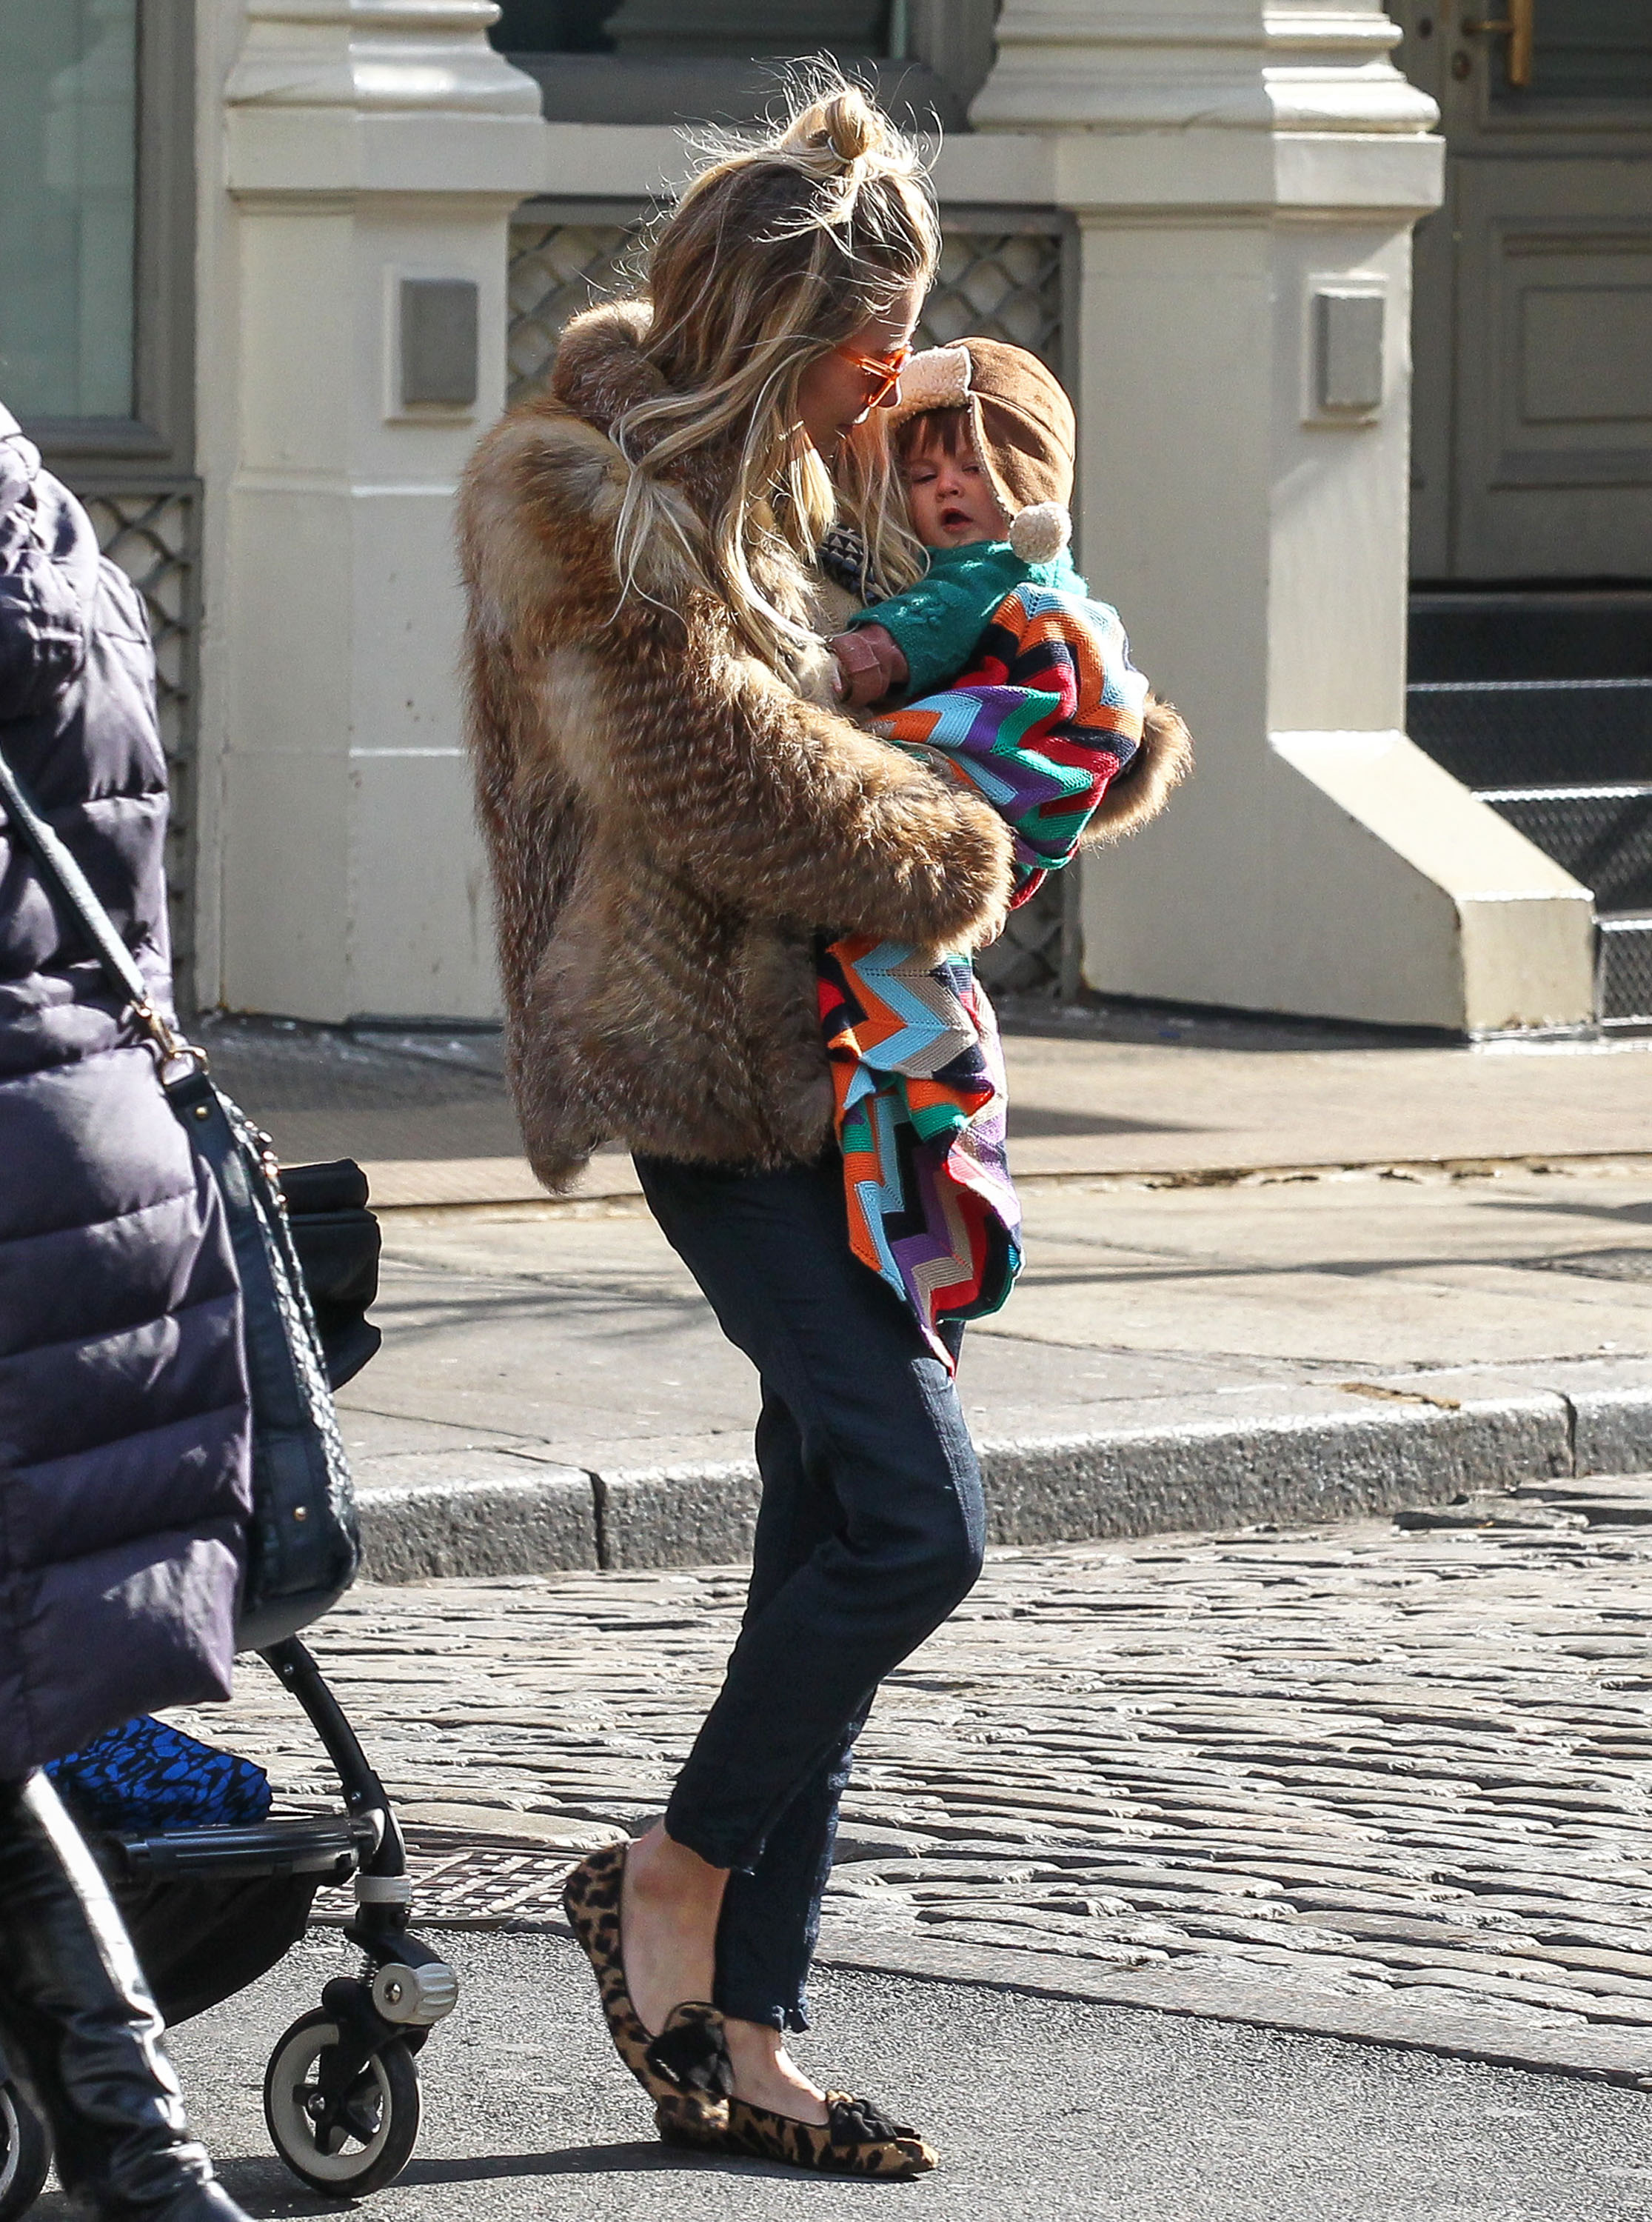 Sienna Miller carried her daughter, Marlowe Sturridge.